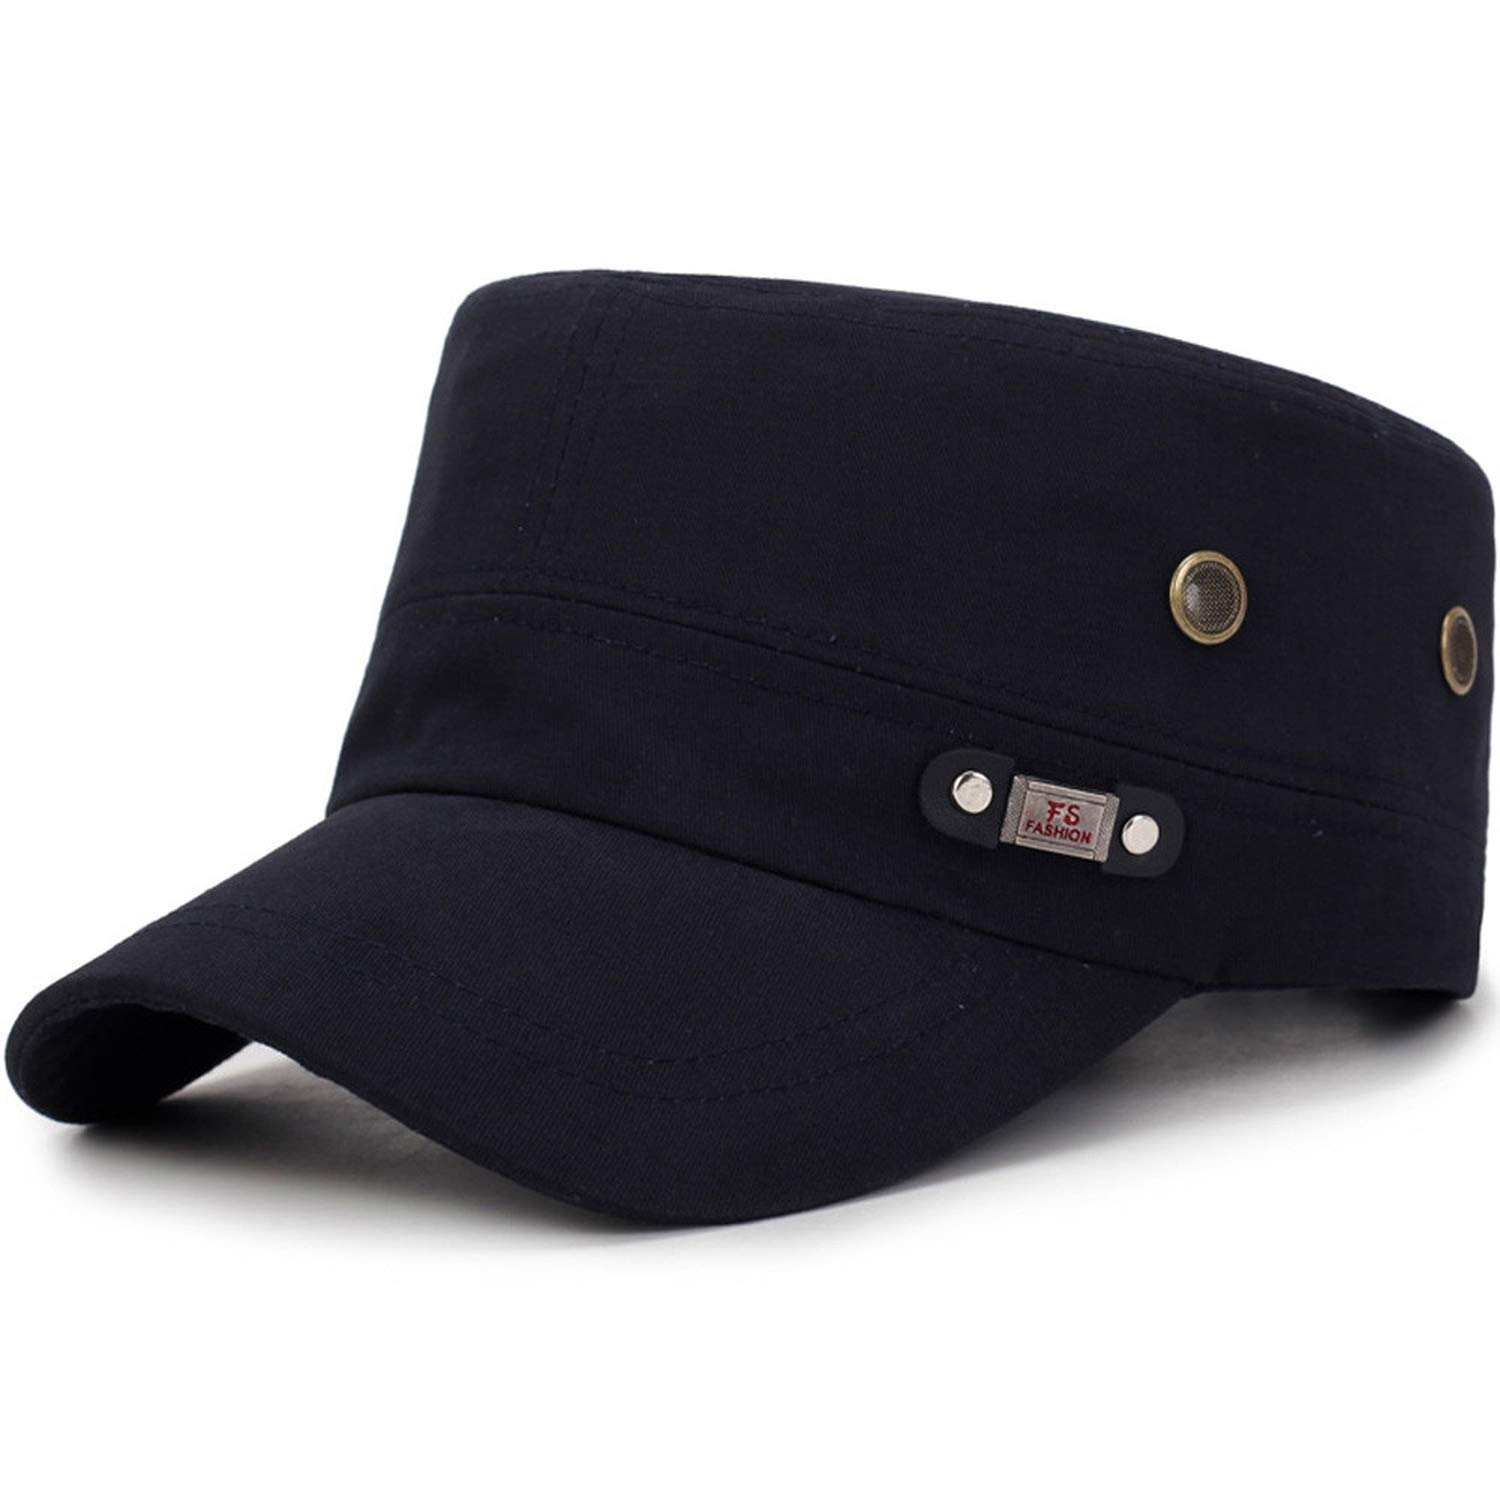 2019 Fashion Hat Mens Military Washed Hats Flat Top Baseball Caps Cotton Dad Caps